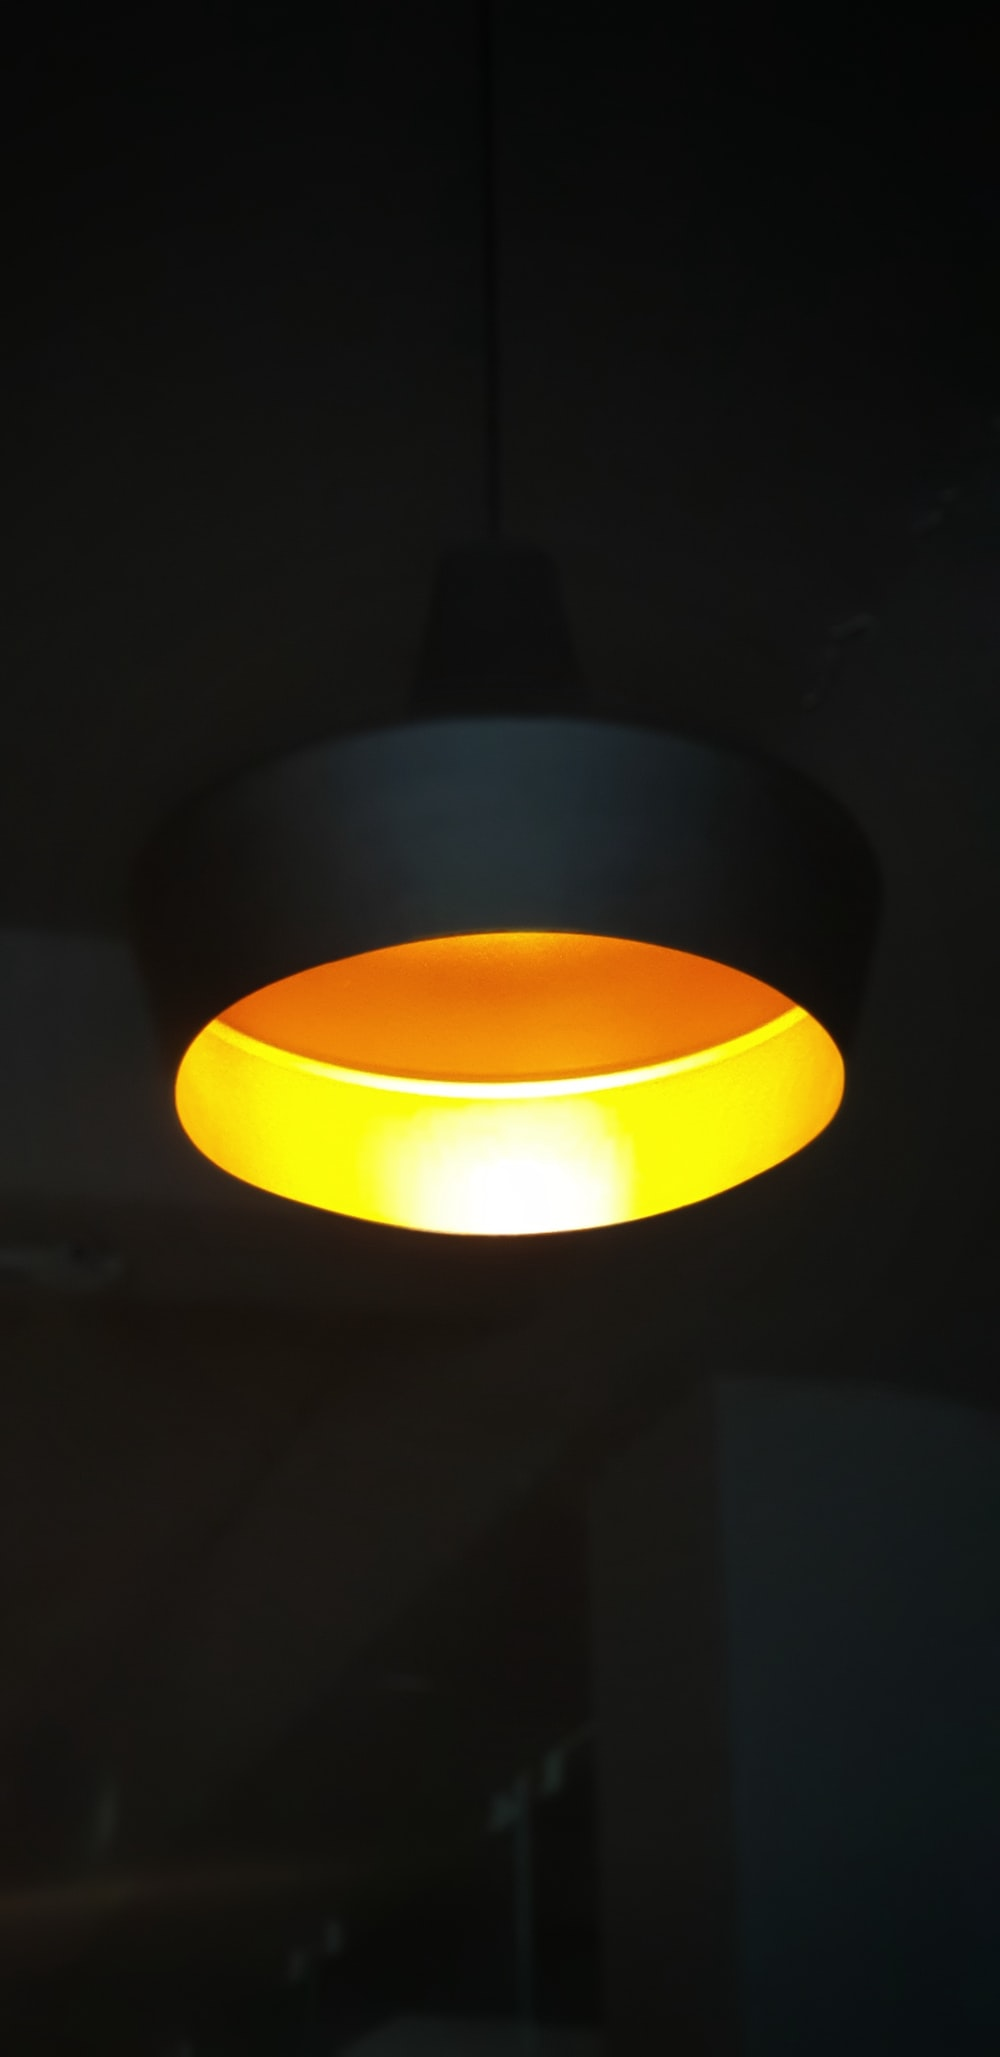 lighted round yellow ceiling lamp